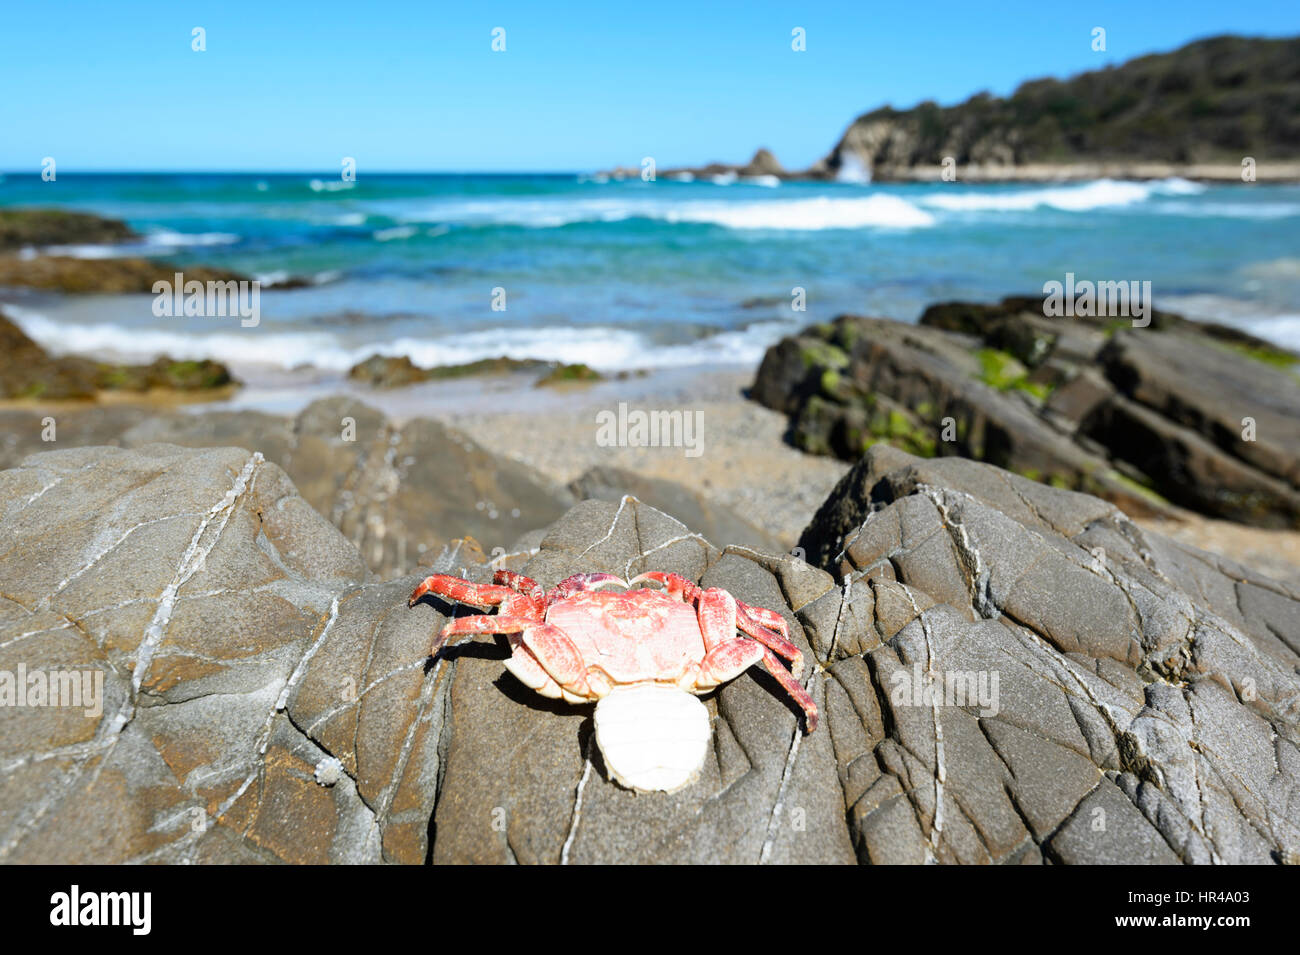 Dead crab on rocks at Potato Point, New South Wales, Australia - Stock Image